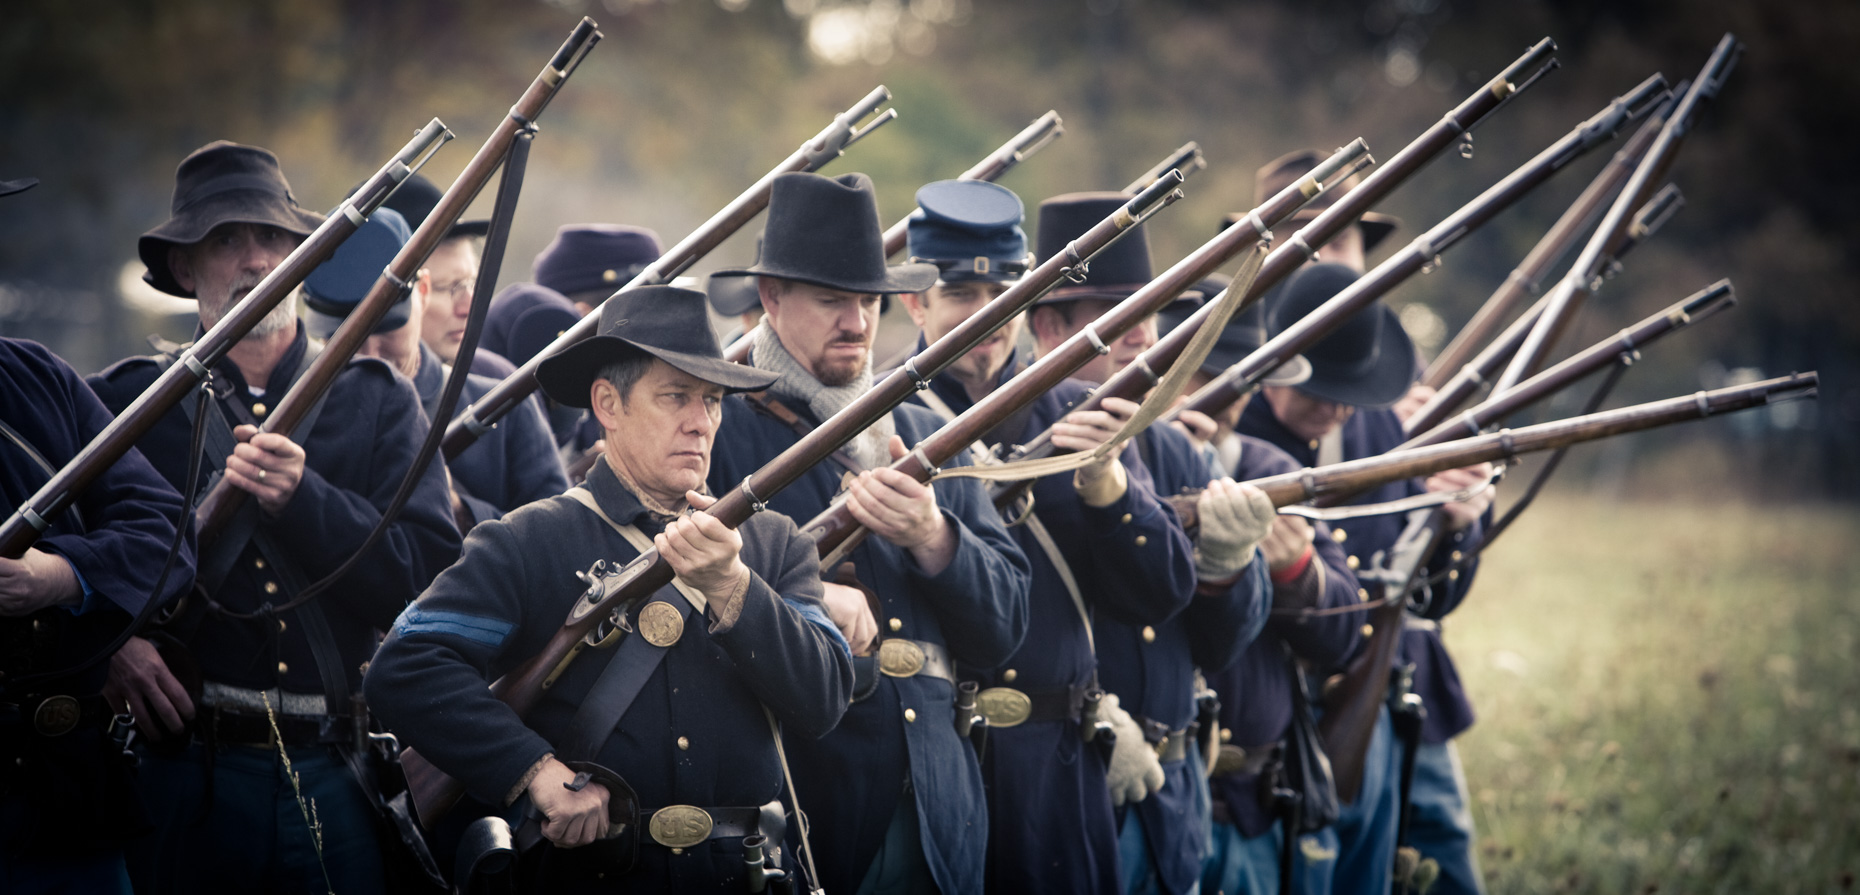 20091017_civil_war_0302